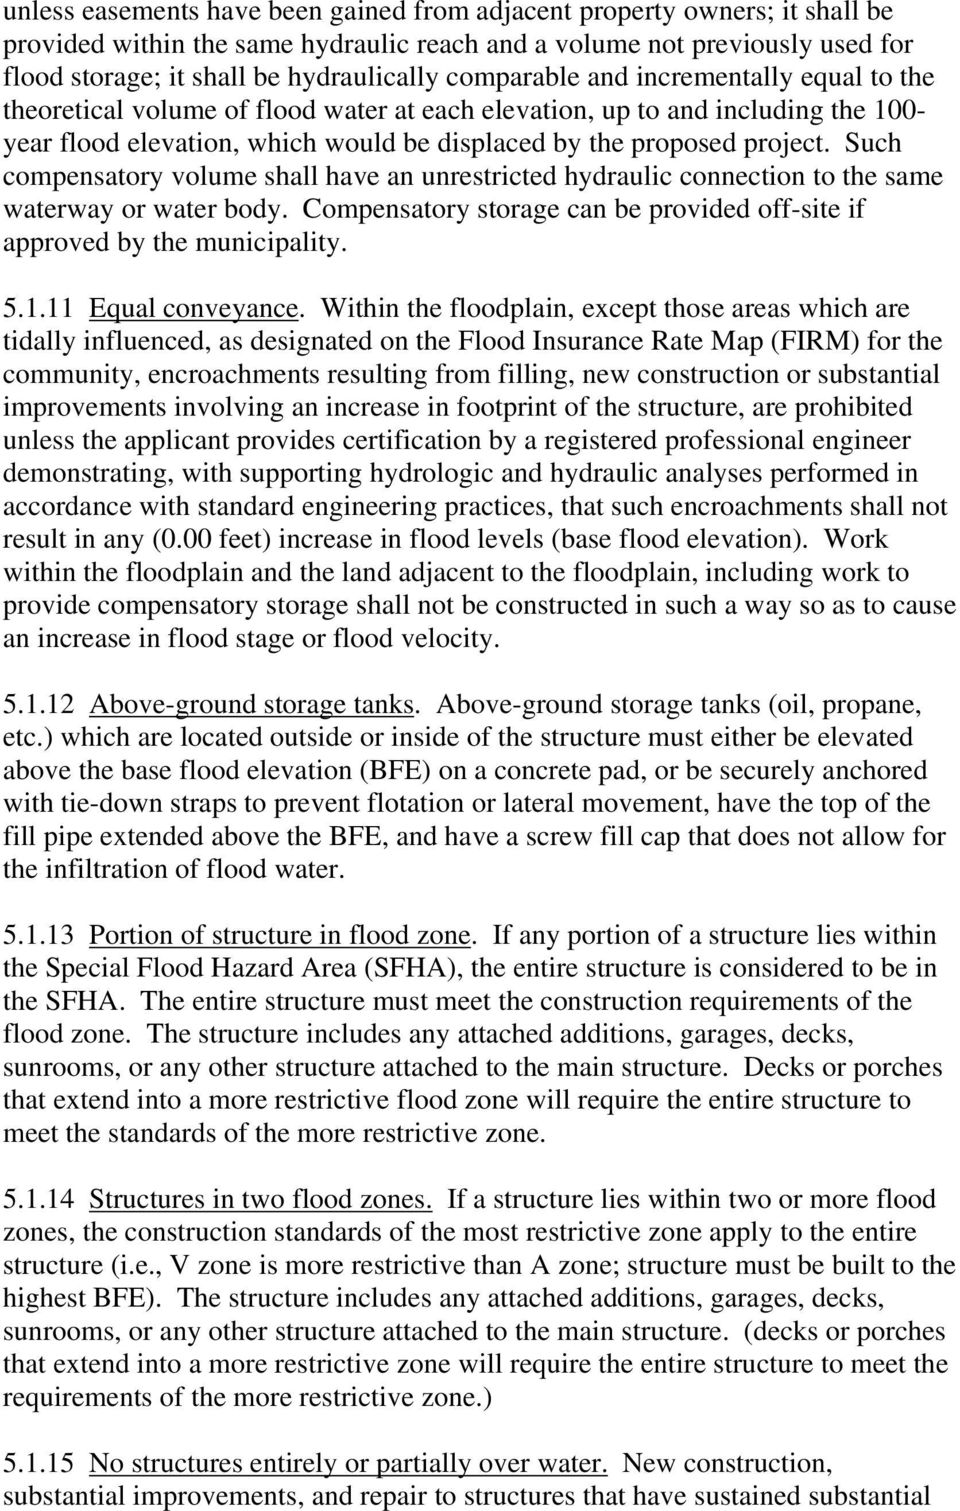 Such compensatory volume shall have an unrestricted hydraulic connection to the same waterway or water body. Compensatory storage can be provided off-site if approved by the municipality. 5.1.